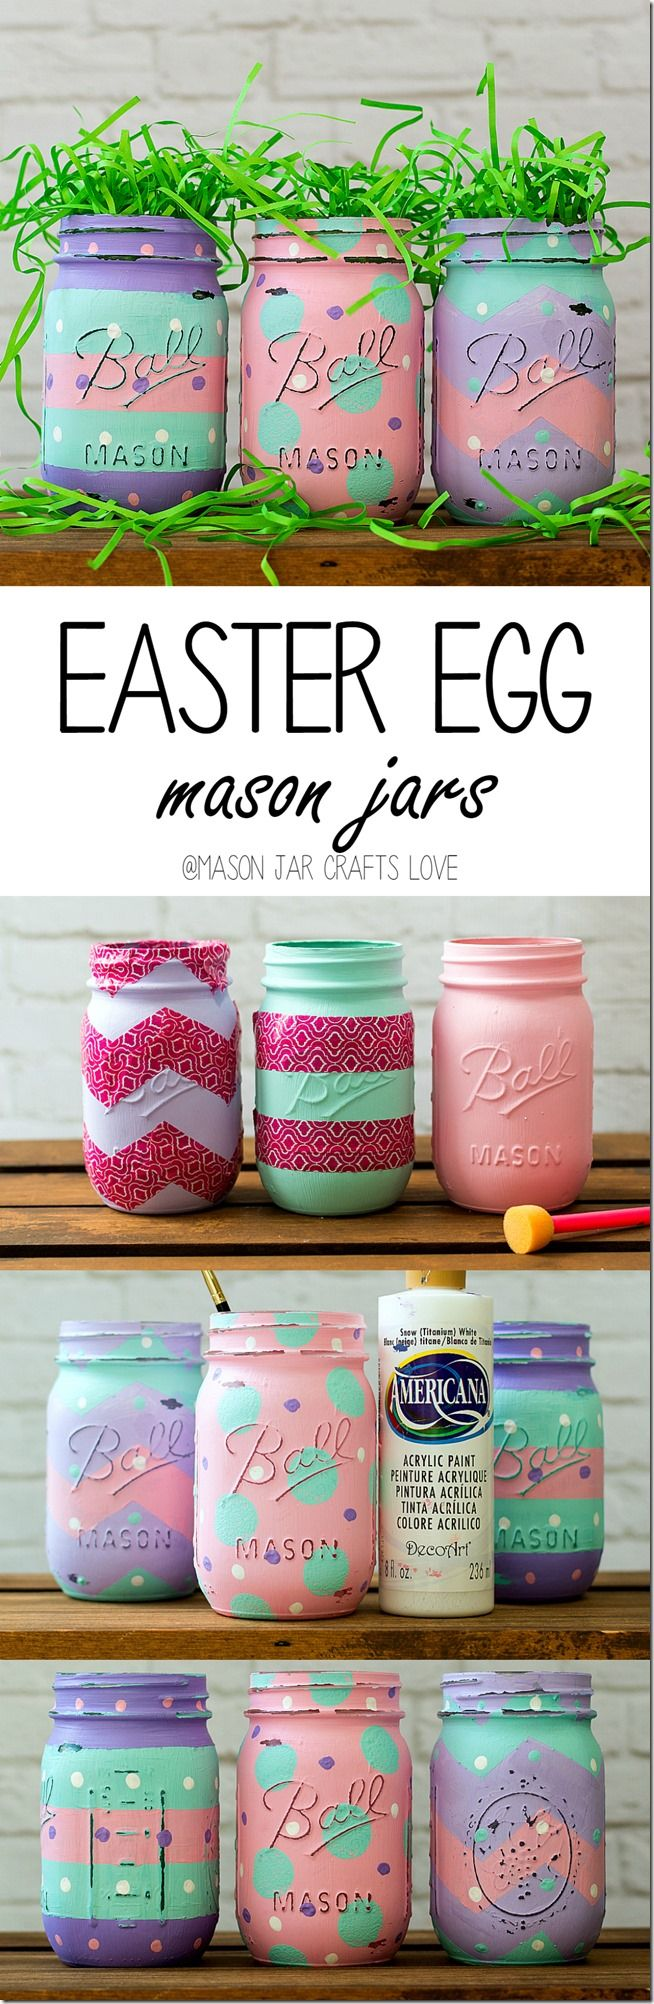 Easter Egg Mason Jars - Mason Jar Crafts Love